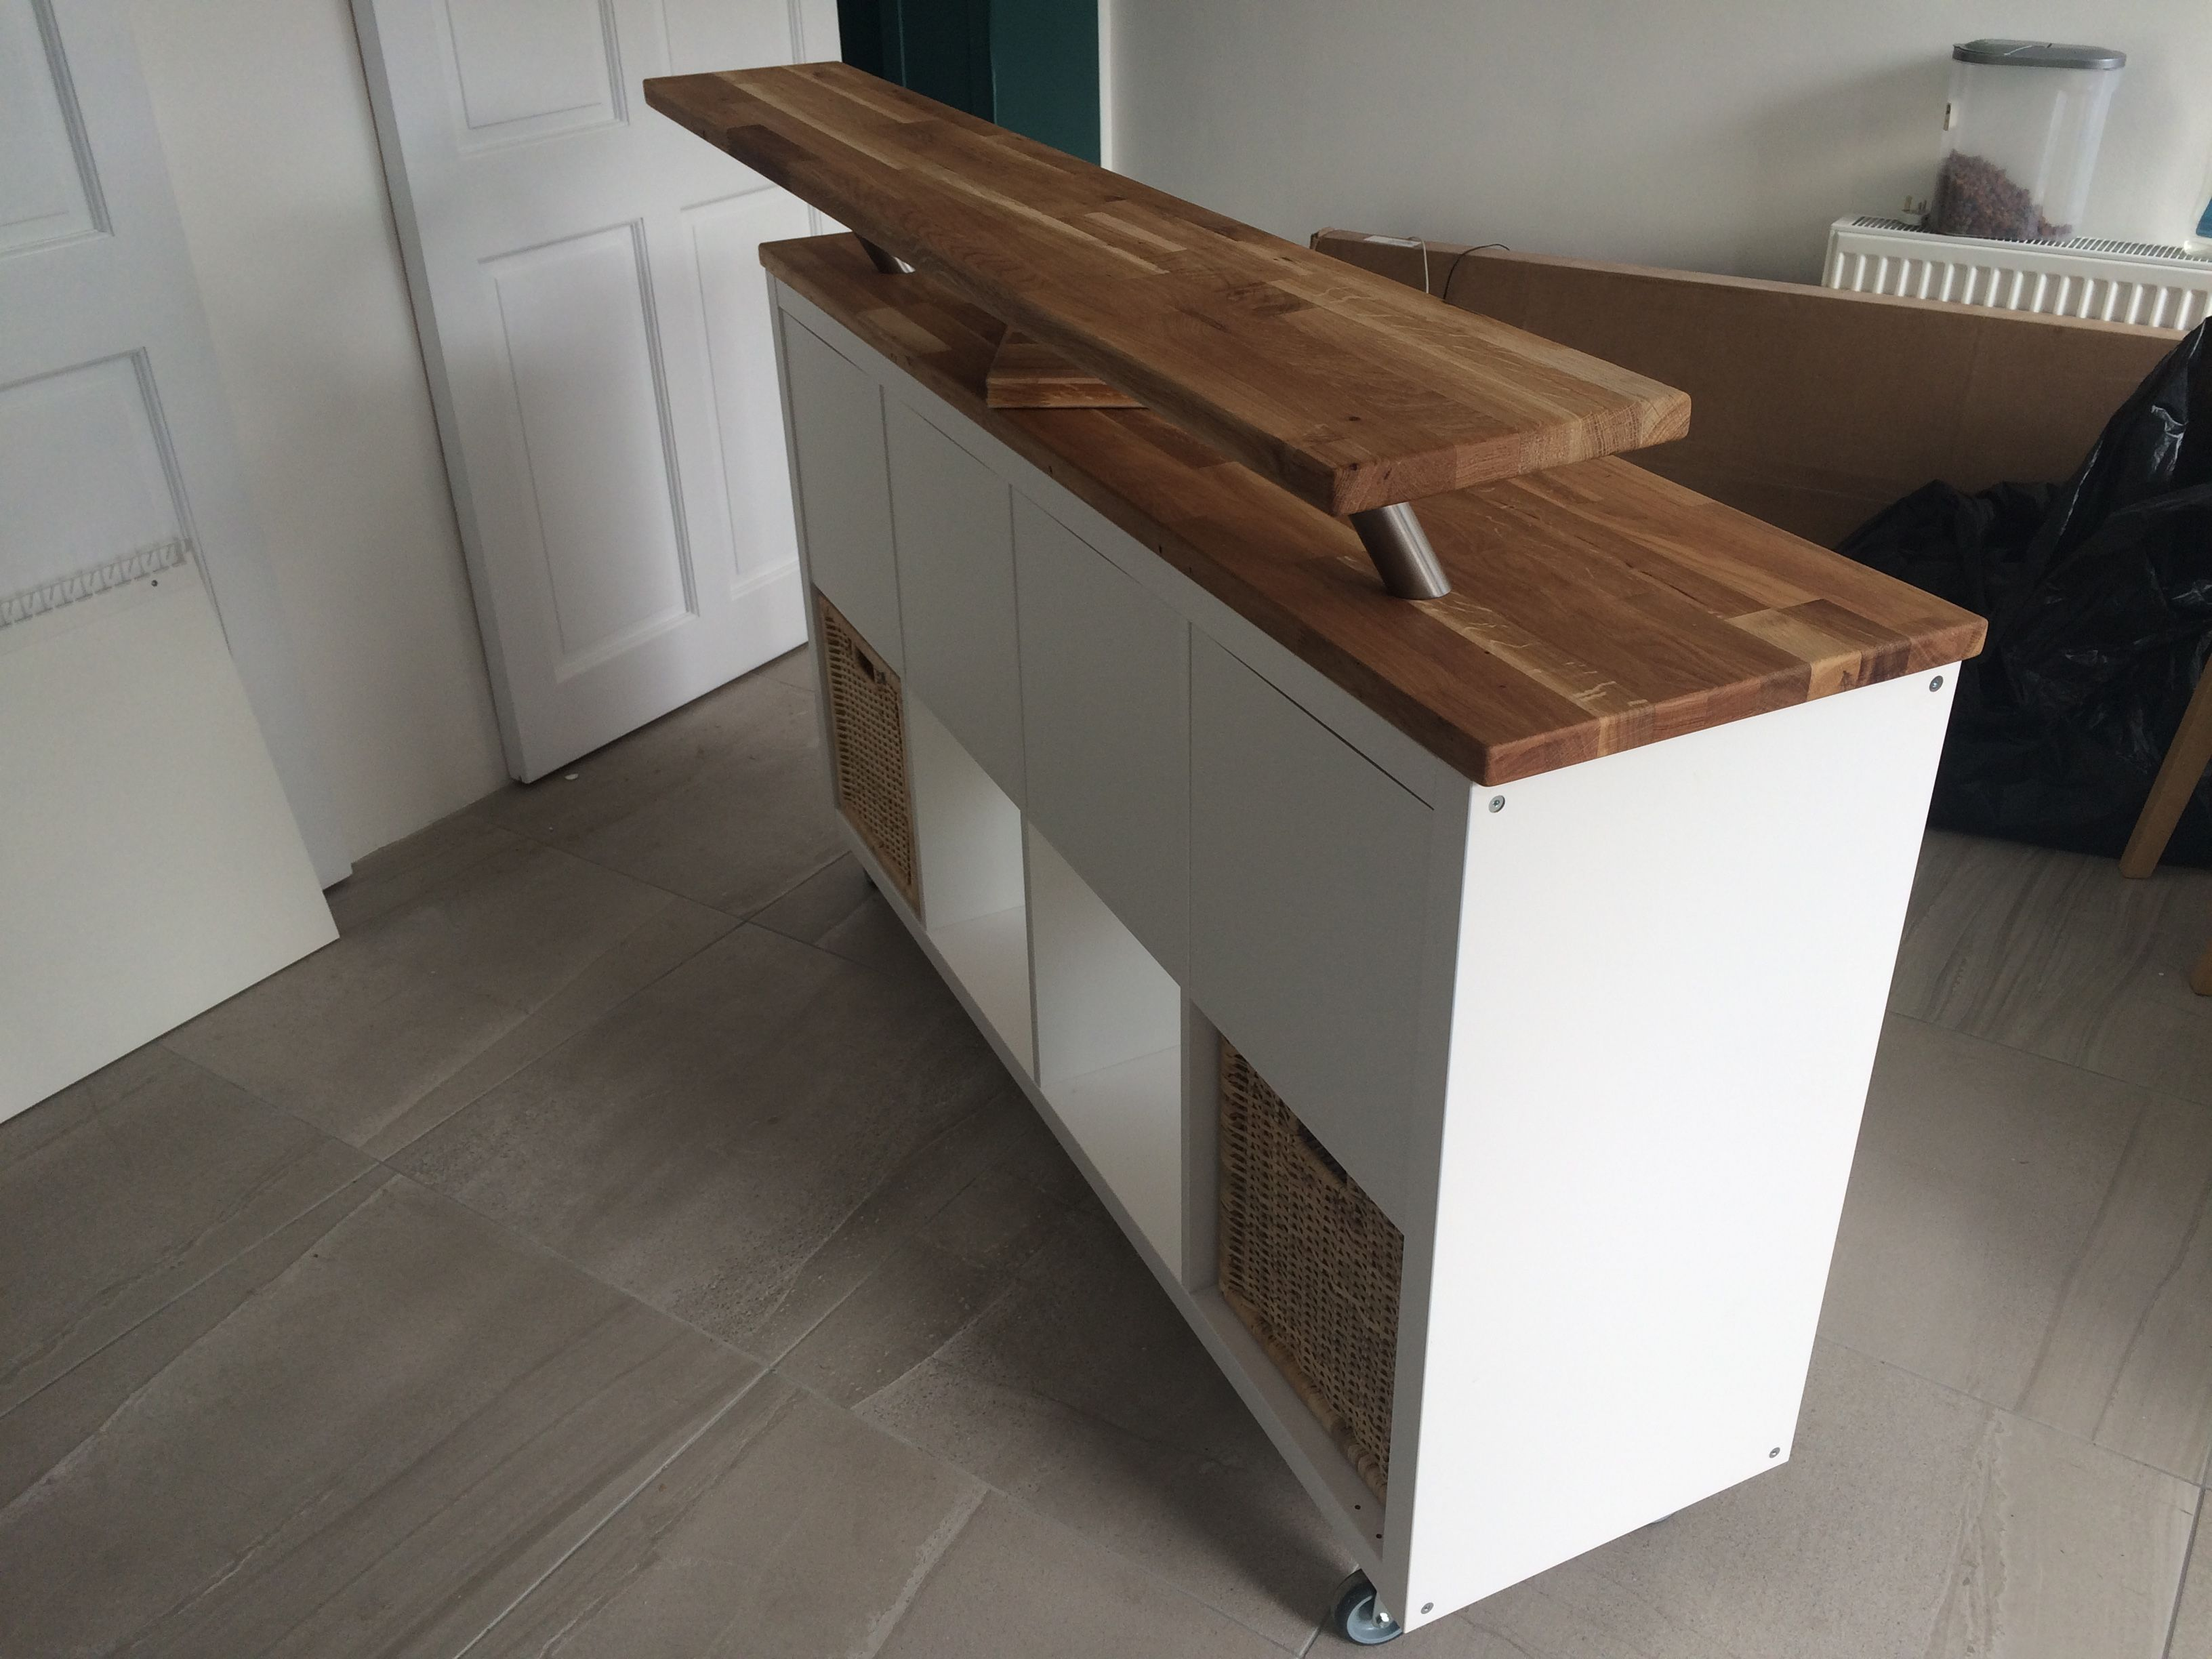 Ikea Hacks Kallax Küche Ikea Hack Kitchen Island 43 Breakfast Bar Kallax On Heavy